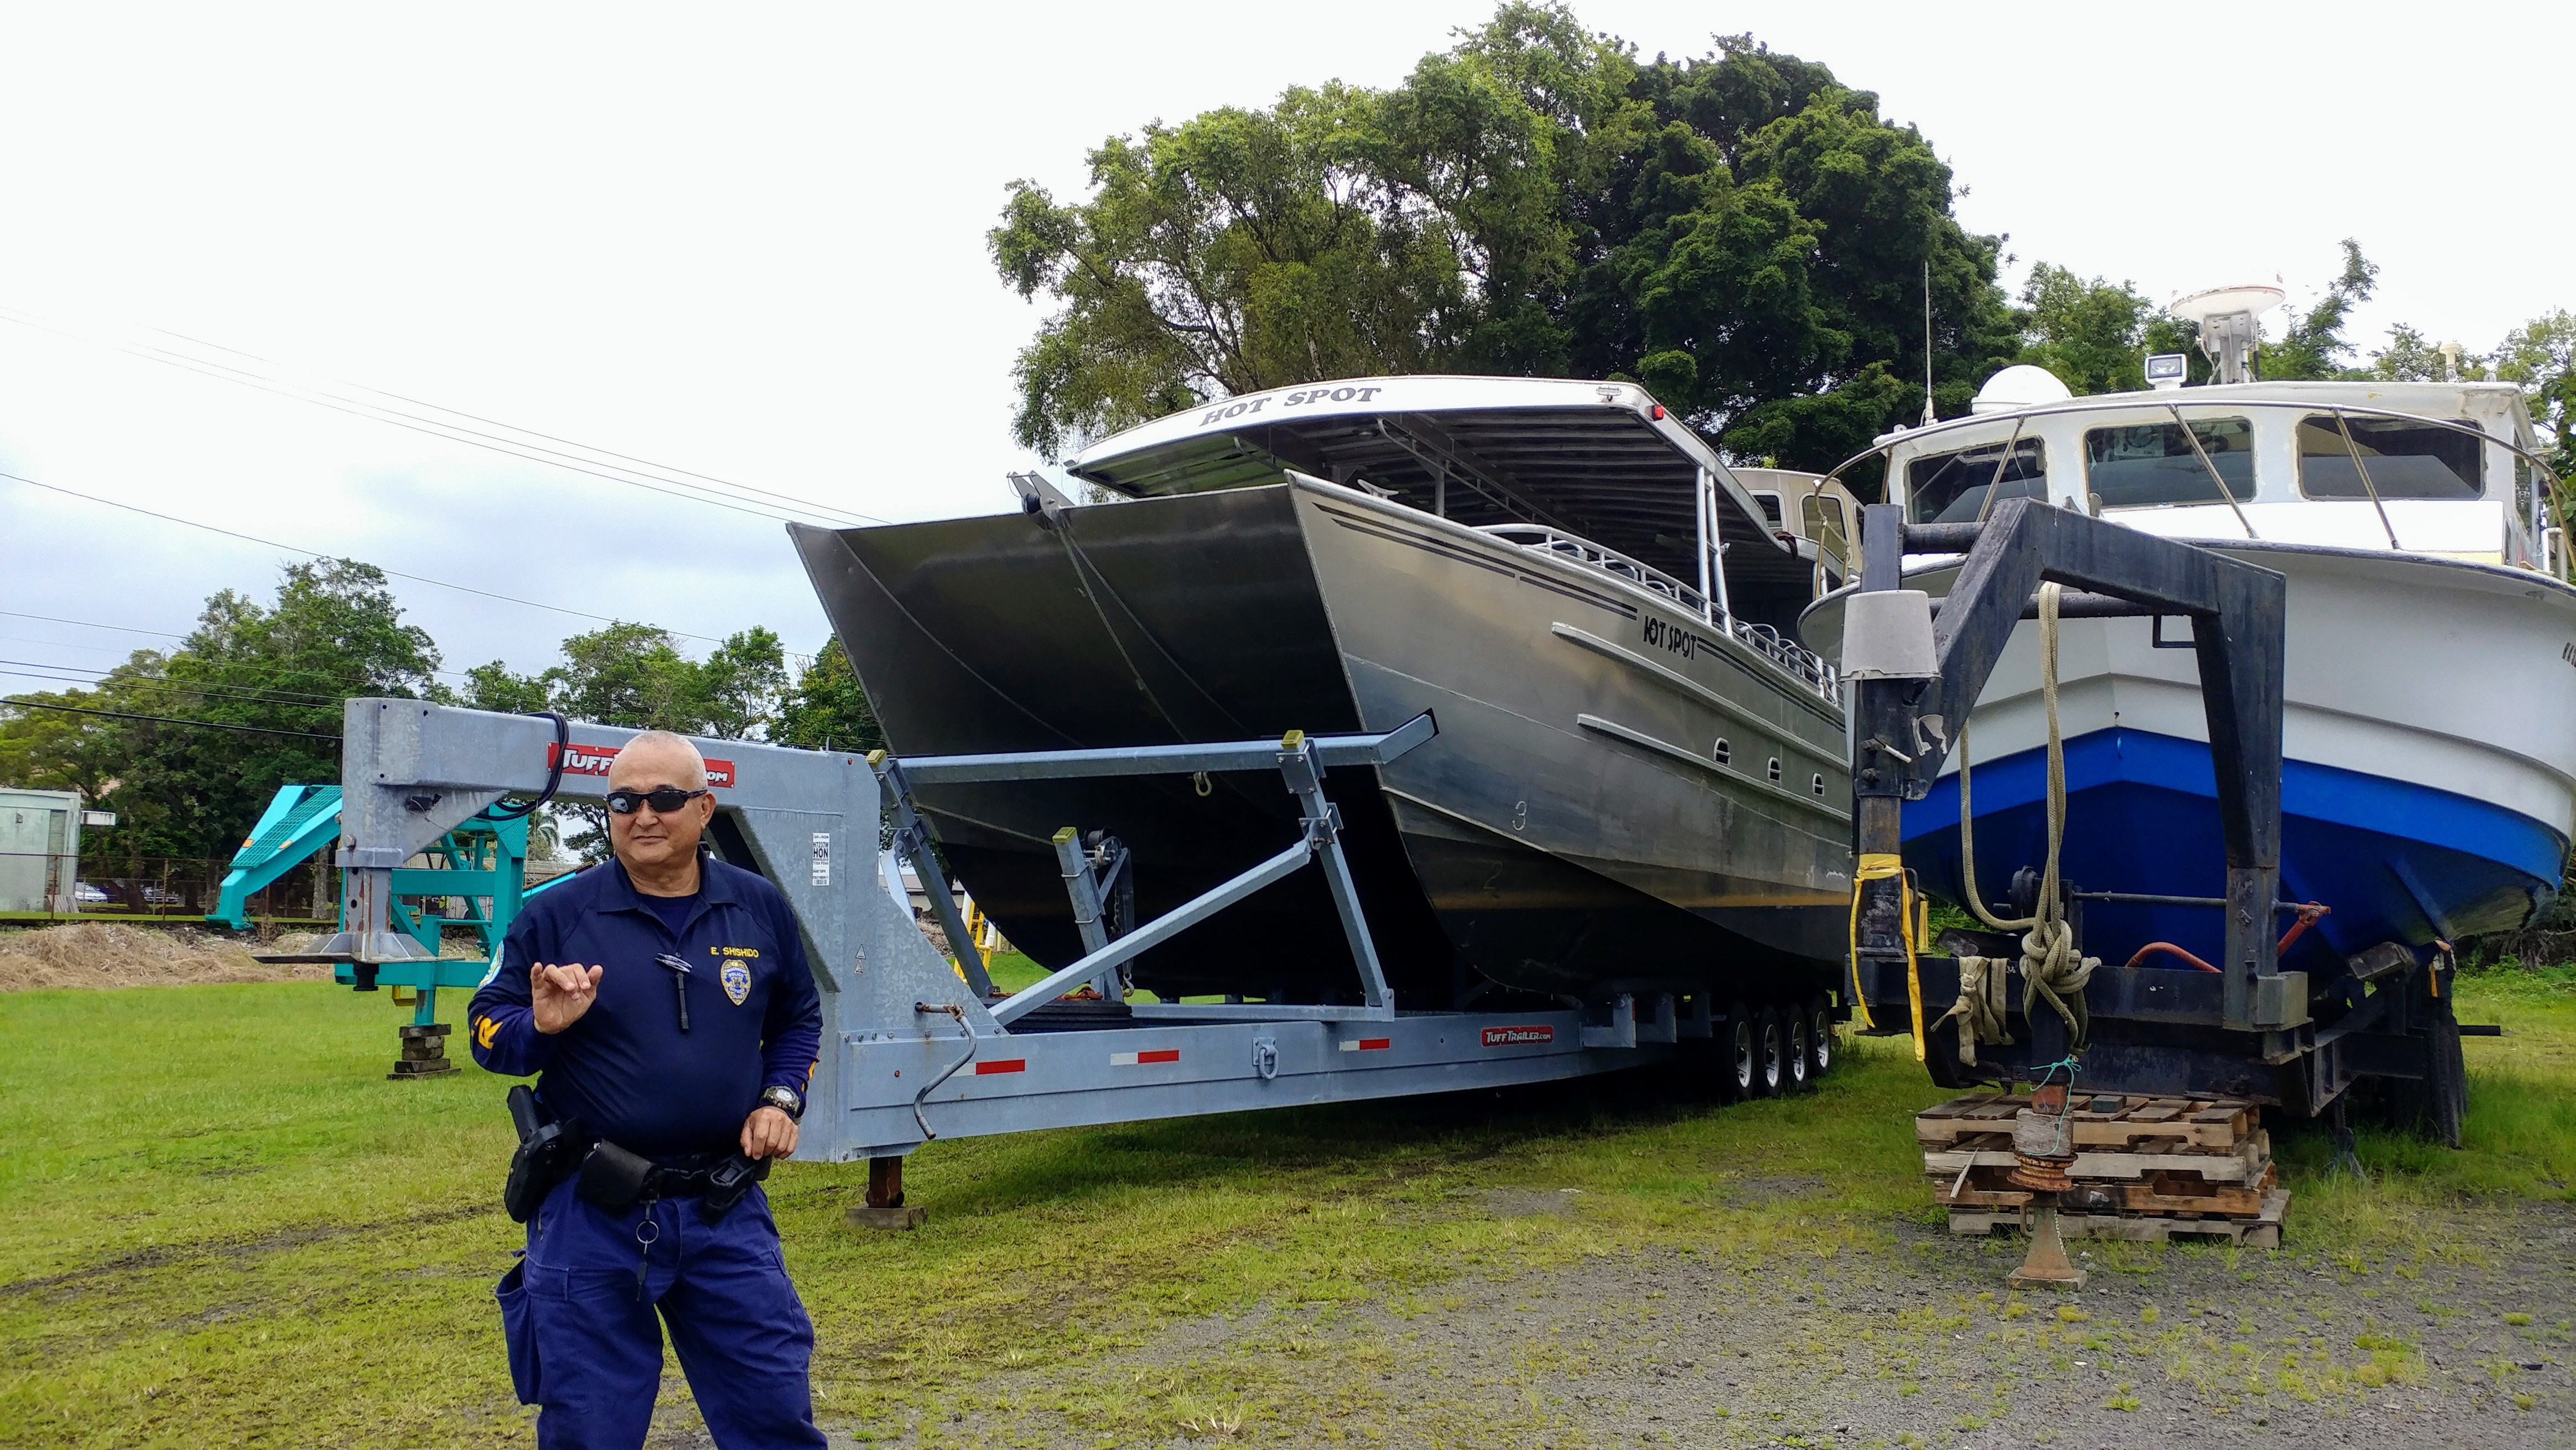 Lava bomb rips through tour boat roof